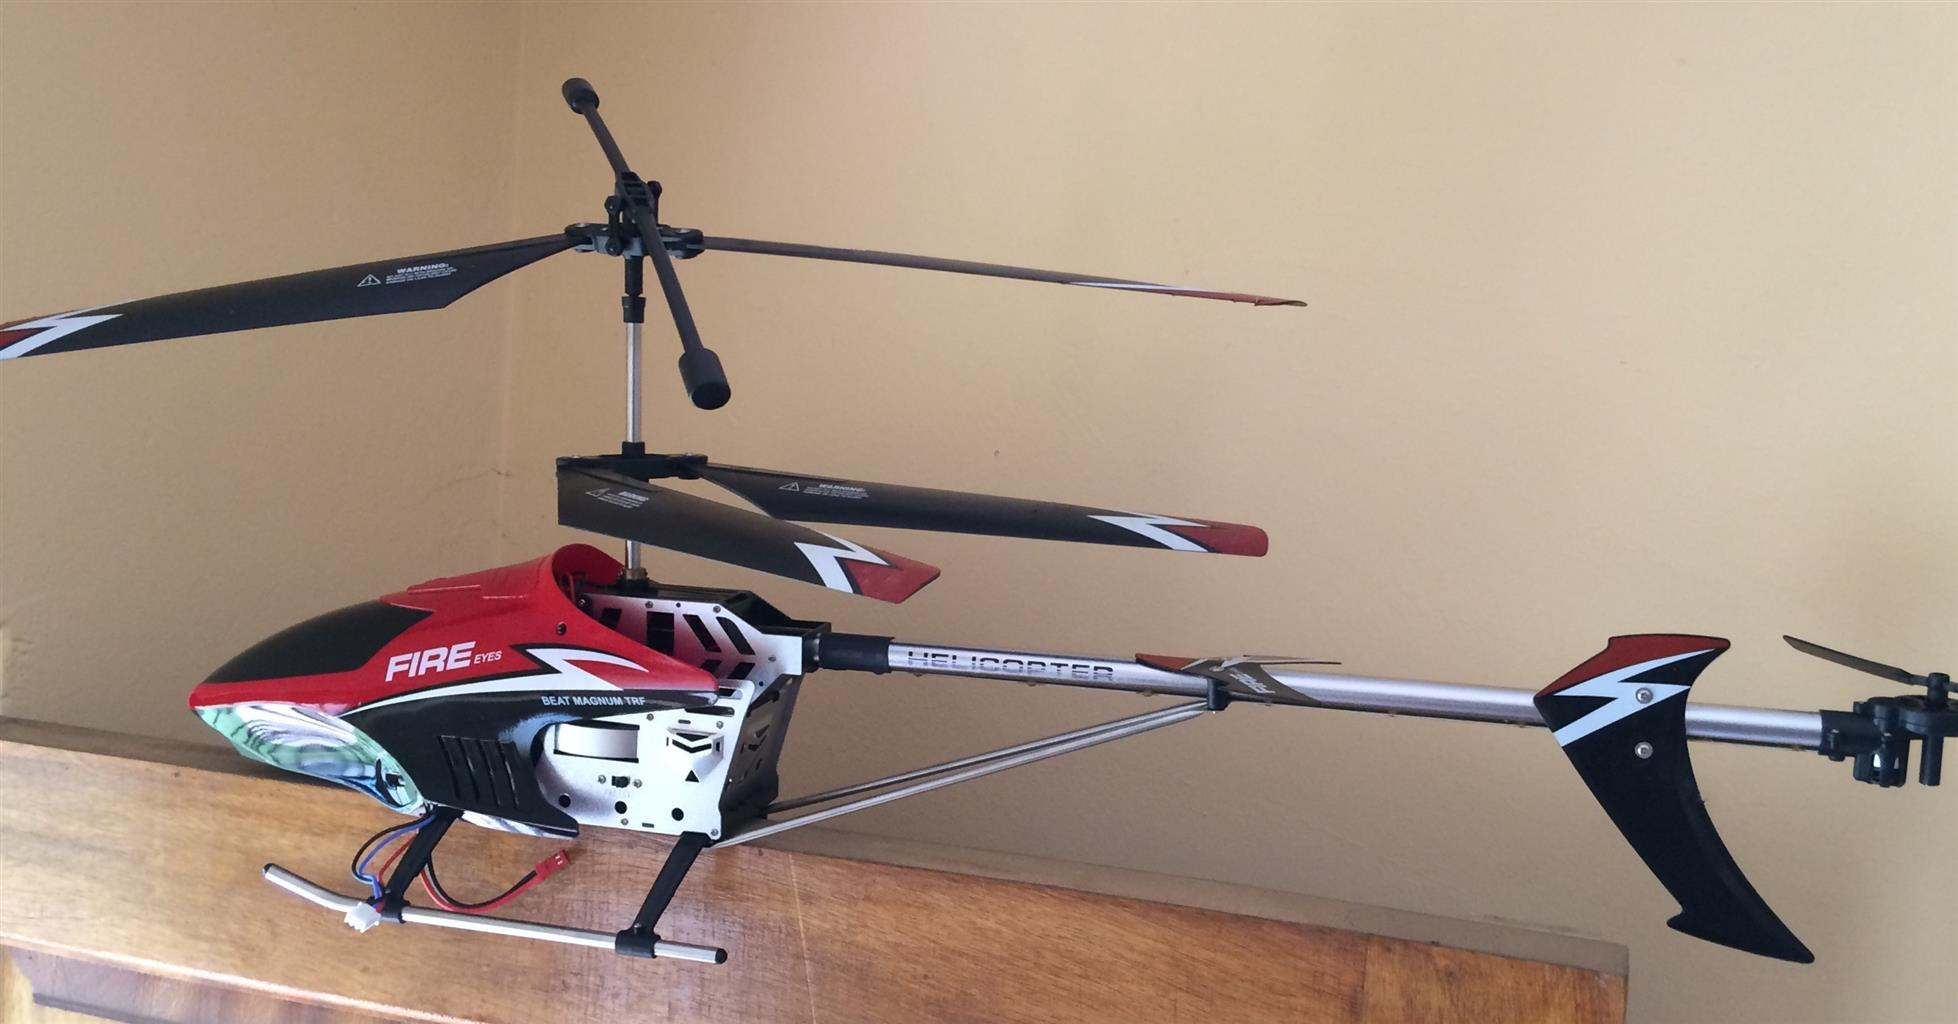 GYRO Hercules Unbreakable 3.5CH Electric RTF RC Helicopter - giveaway price!